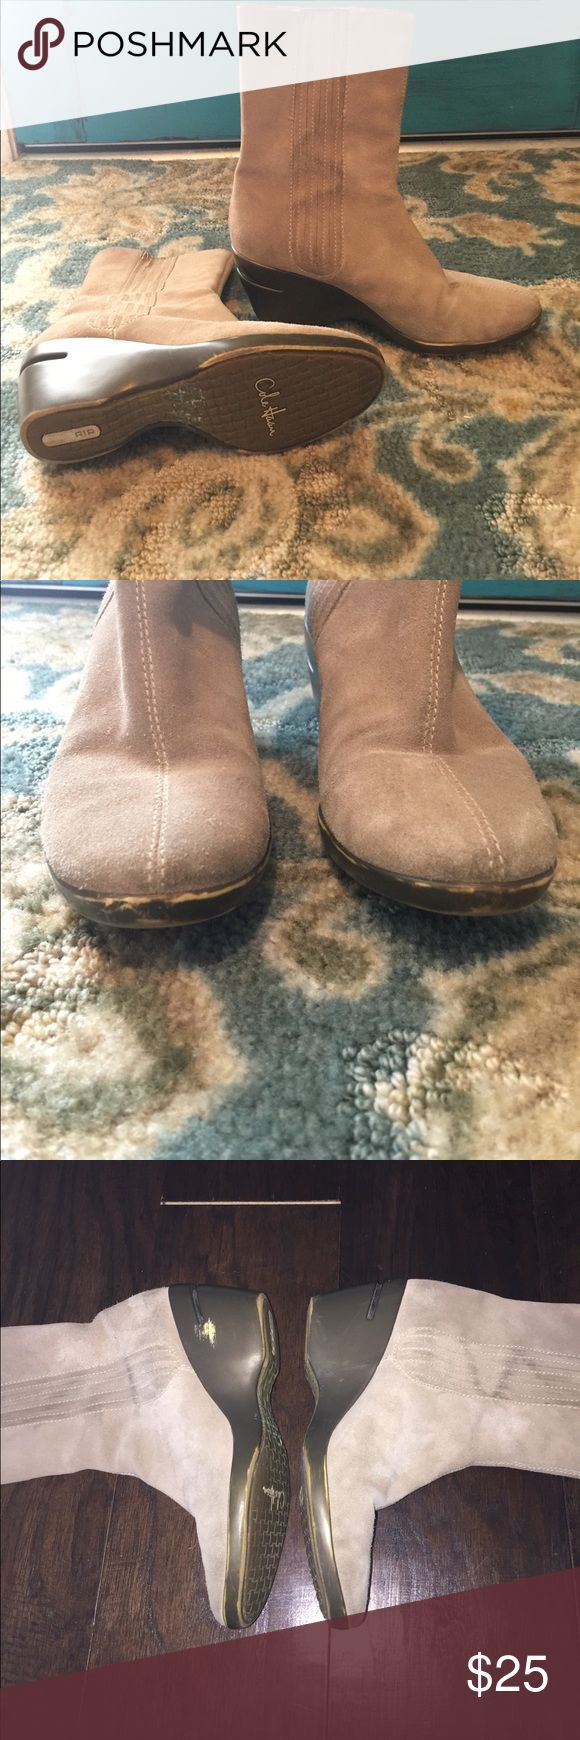 Cole Haan Wedge Nike Air boots Cole Haan Nike Air Wedge  Tan Boots. Size 7.5. Have some visible signs of wear. See pictures. Plenty of more life in them. Very comfortable. These are Cole Haan NIKE AIR collection. Cole Haan Shoes Heeled Boots